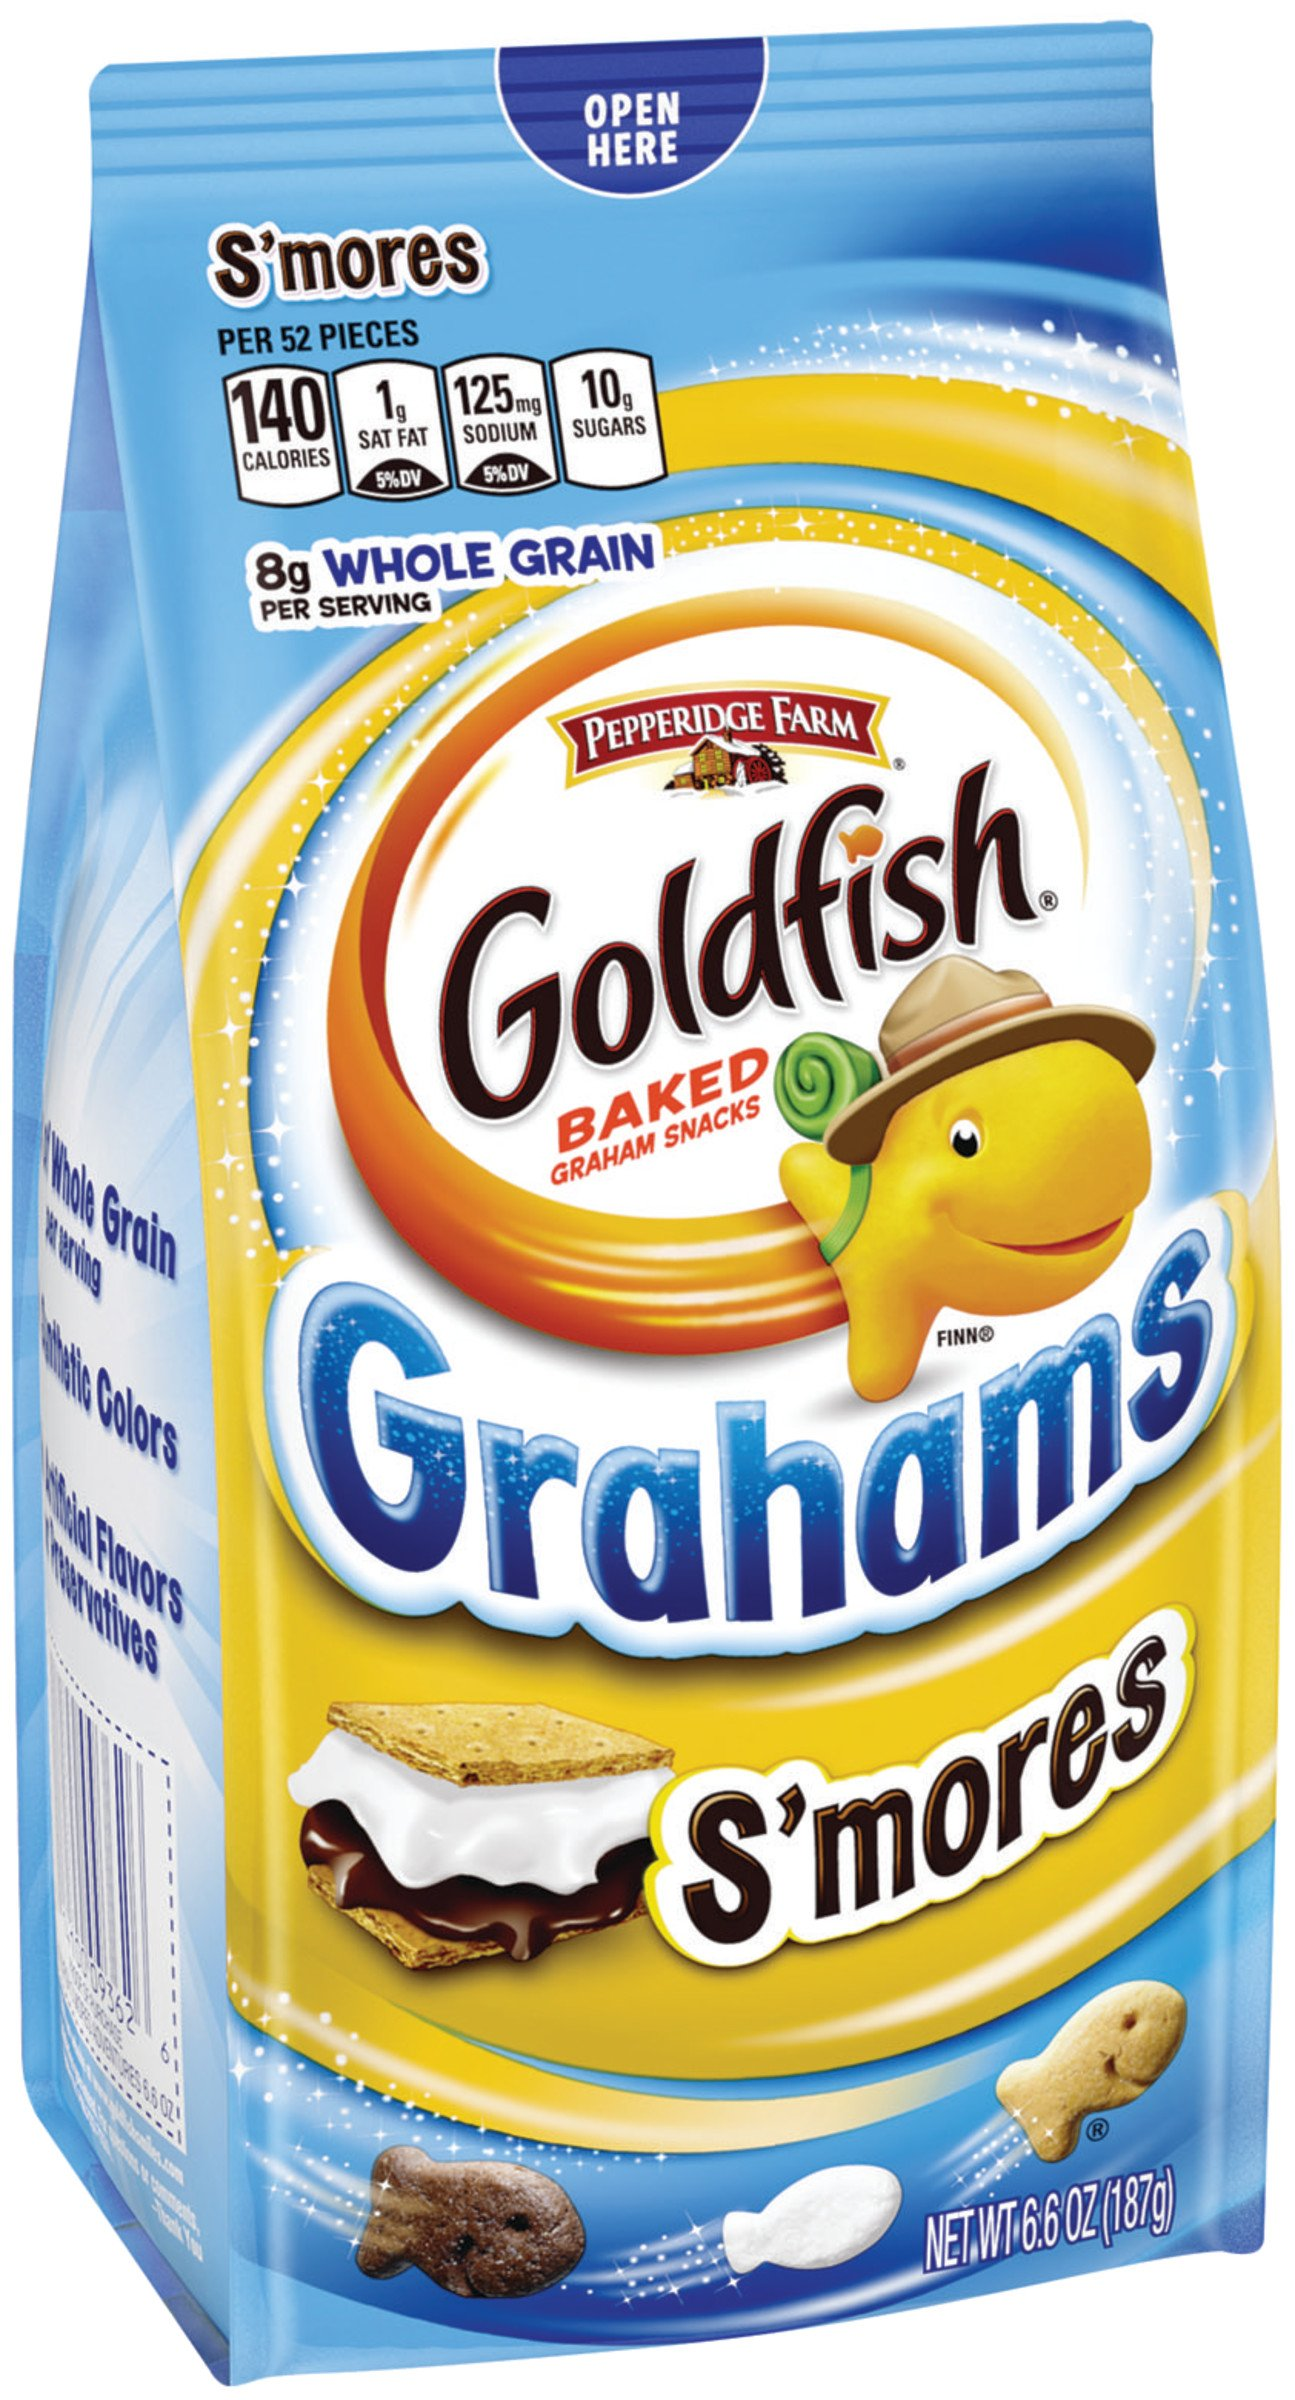 Pepperidge Farm, Goldfish, Grahams, Crackers, S'mores, 6.6 oz, Bags, 24-count